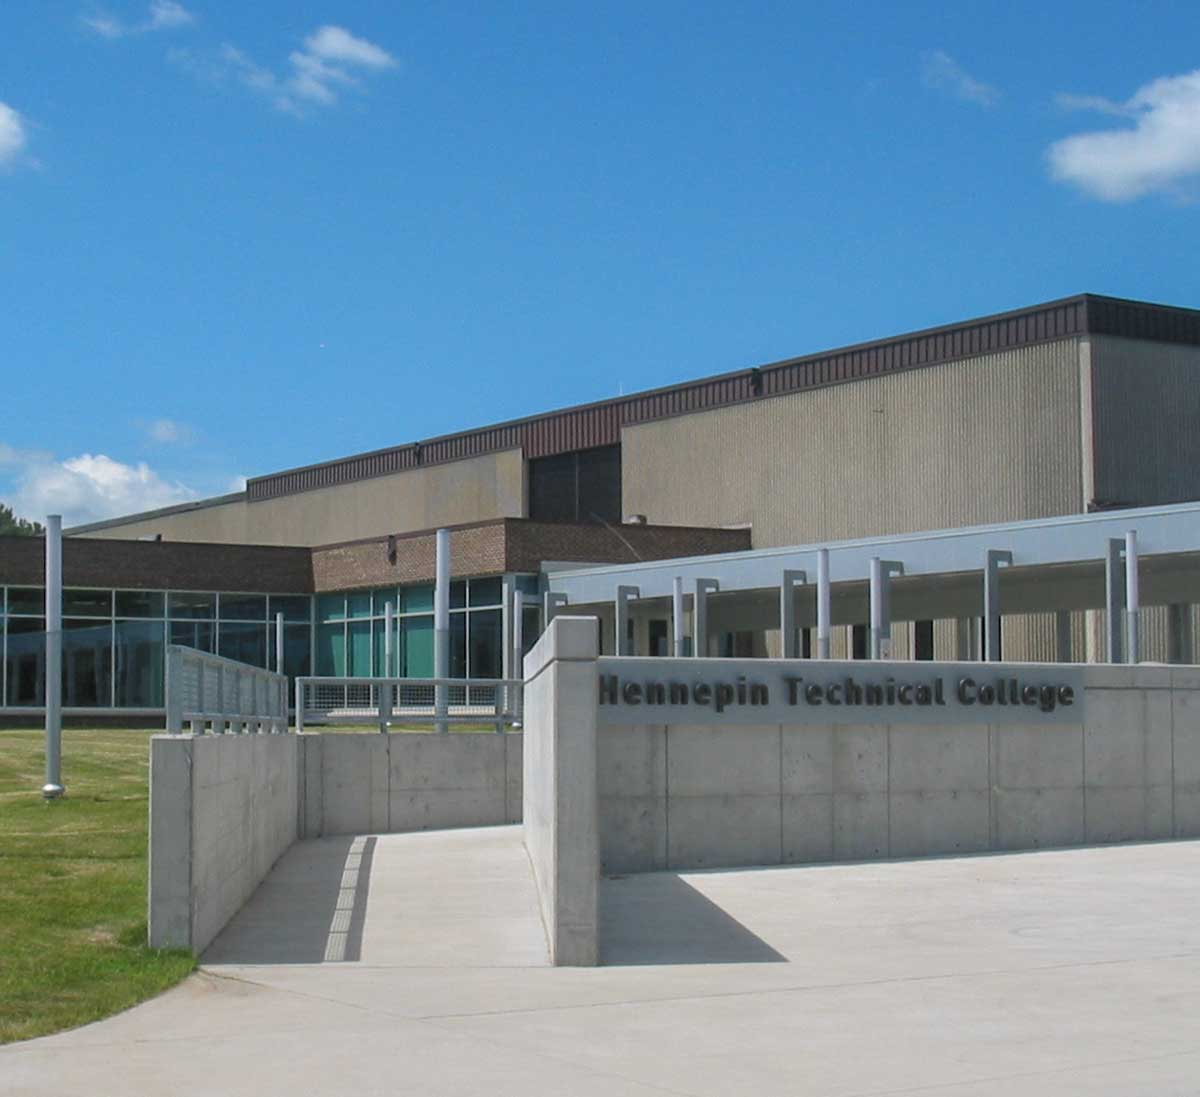 Hennepin Technical College